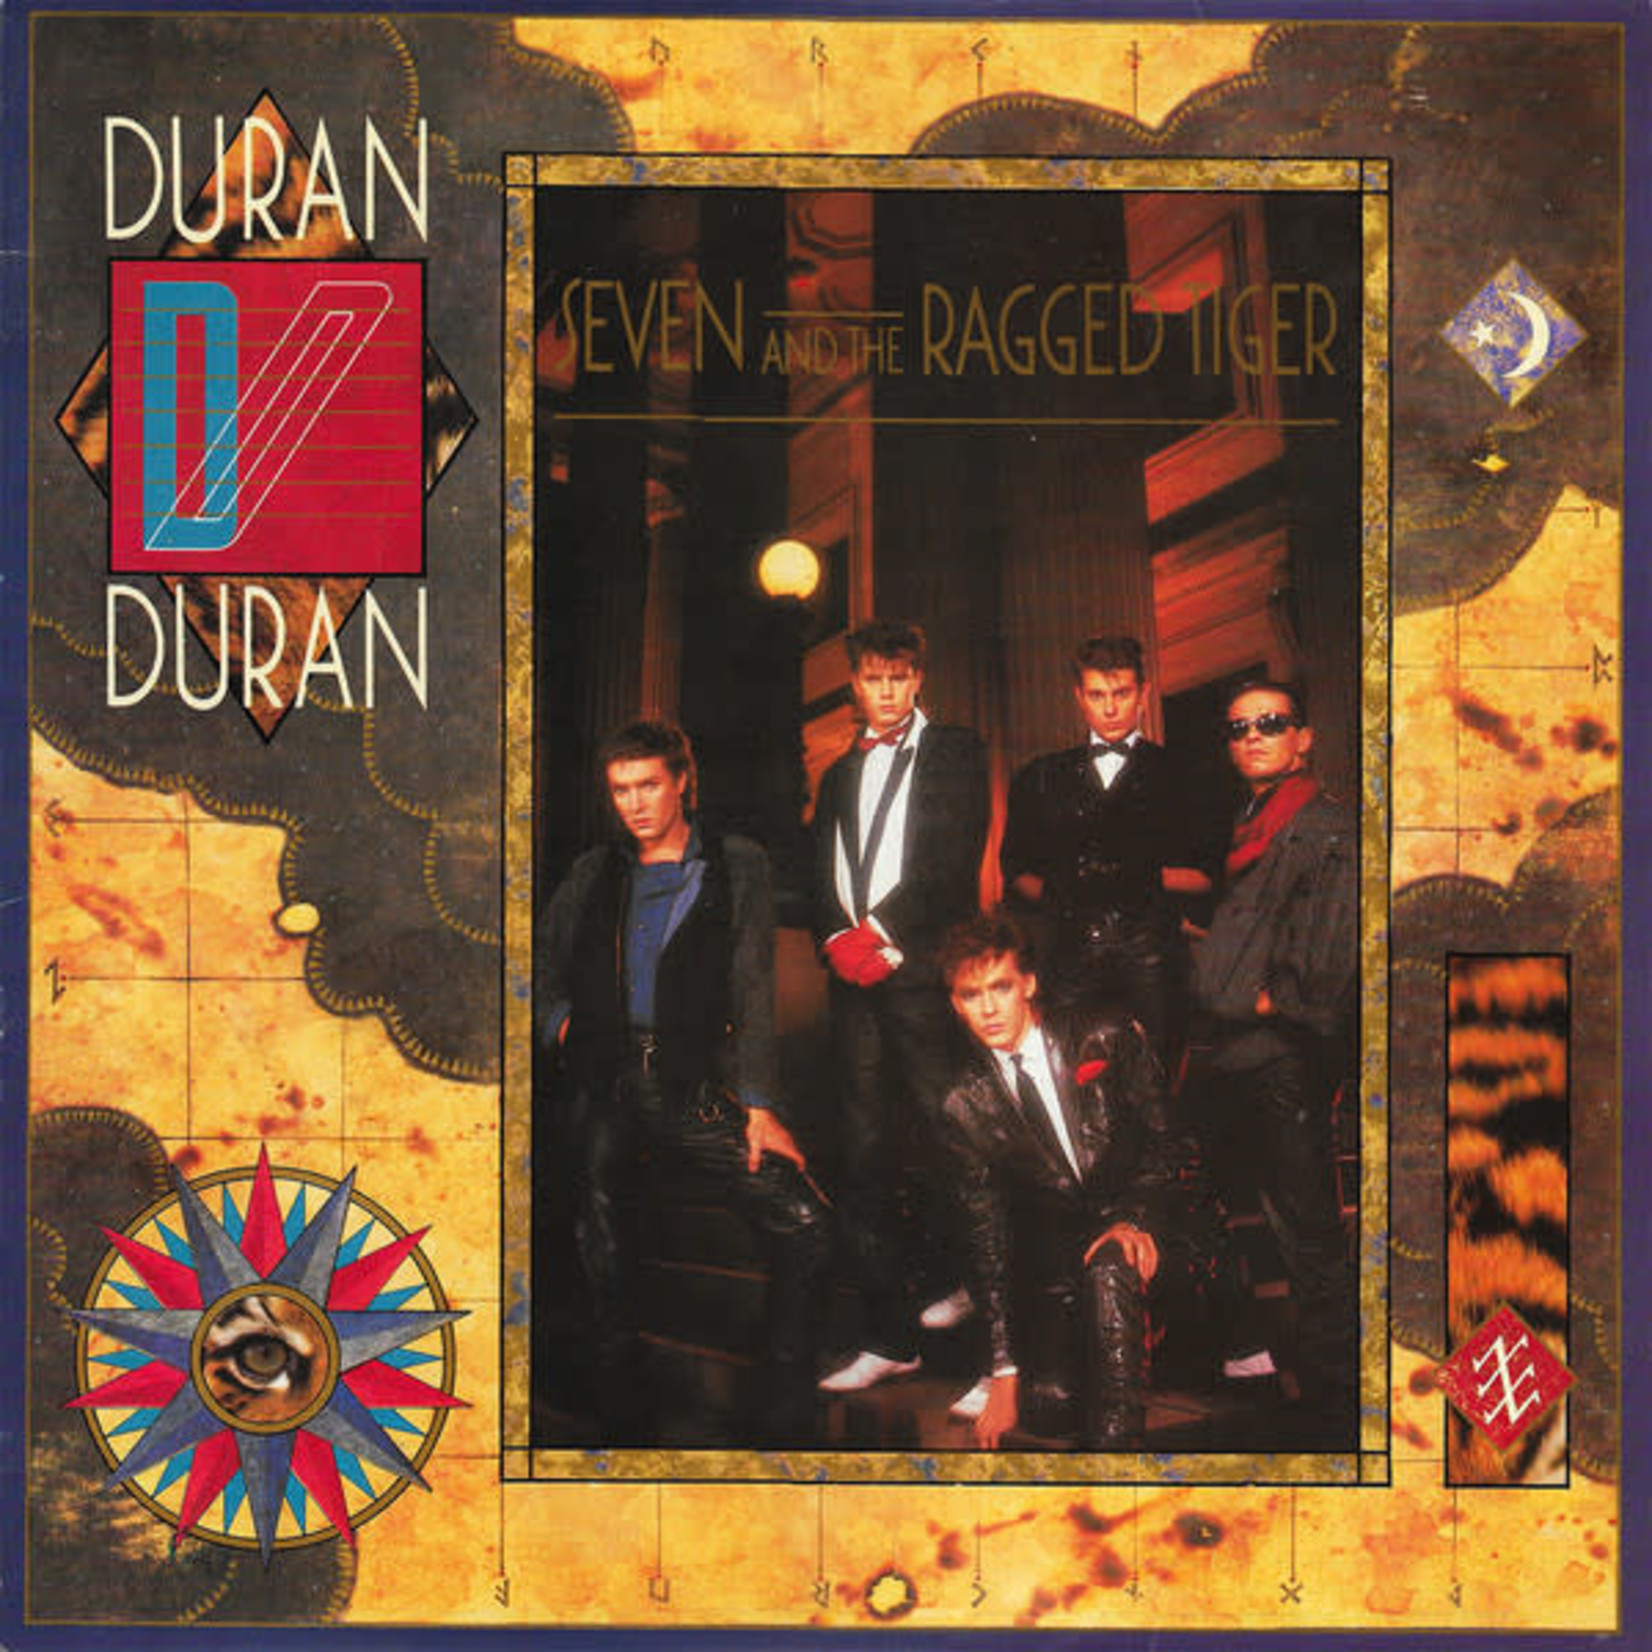 [Vintage] Duran Duran: Seven and the Ragged Tiger